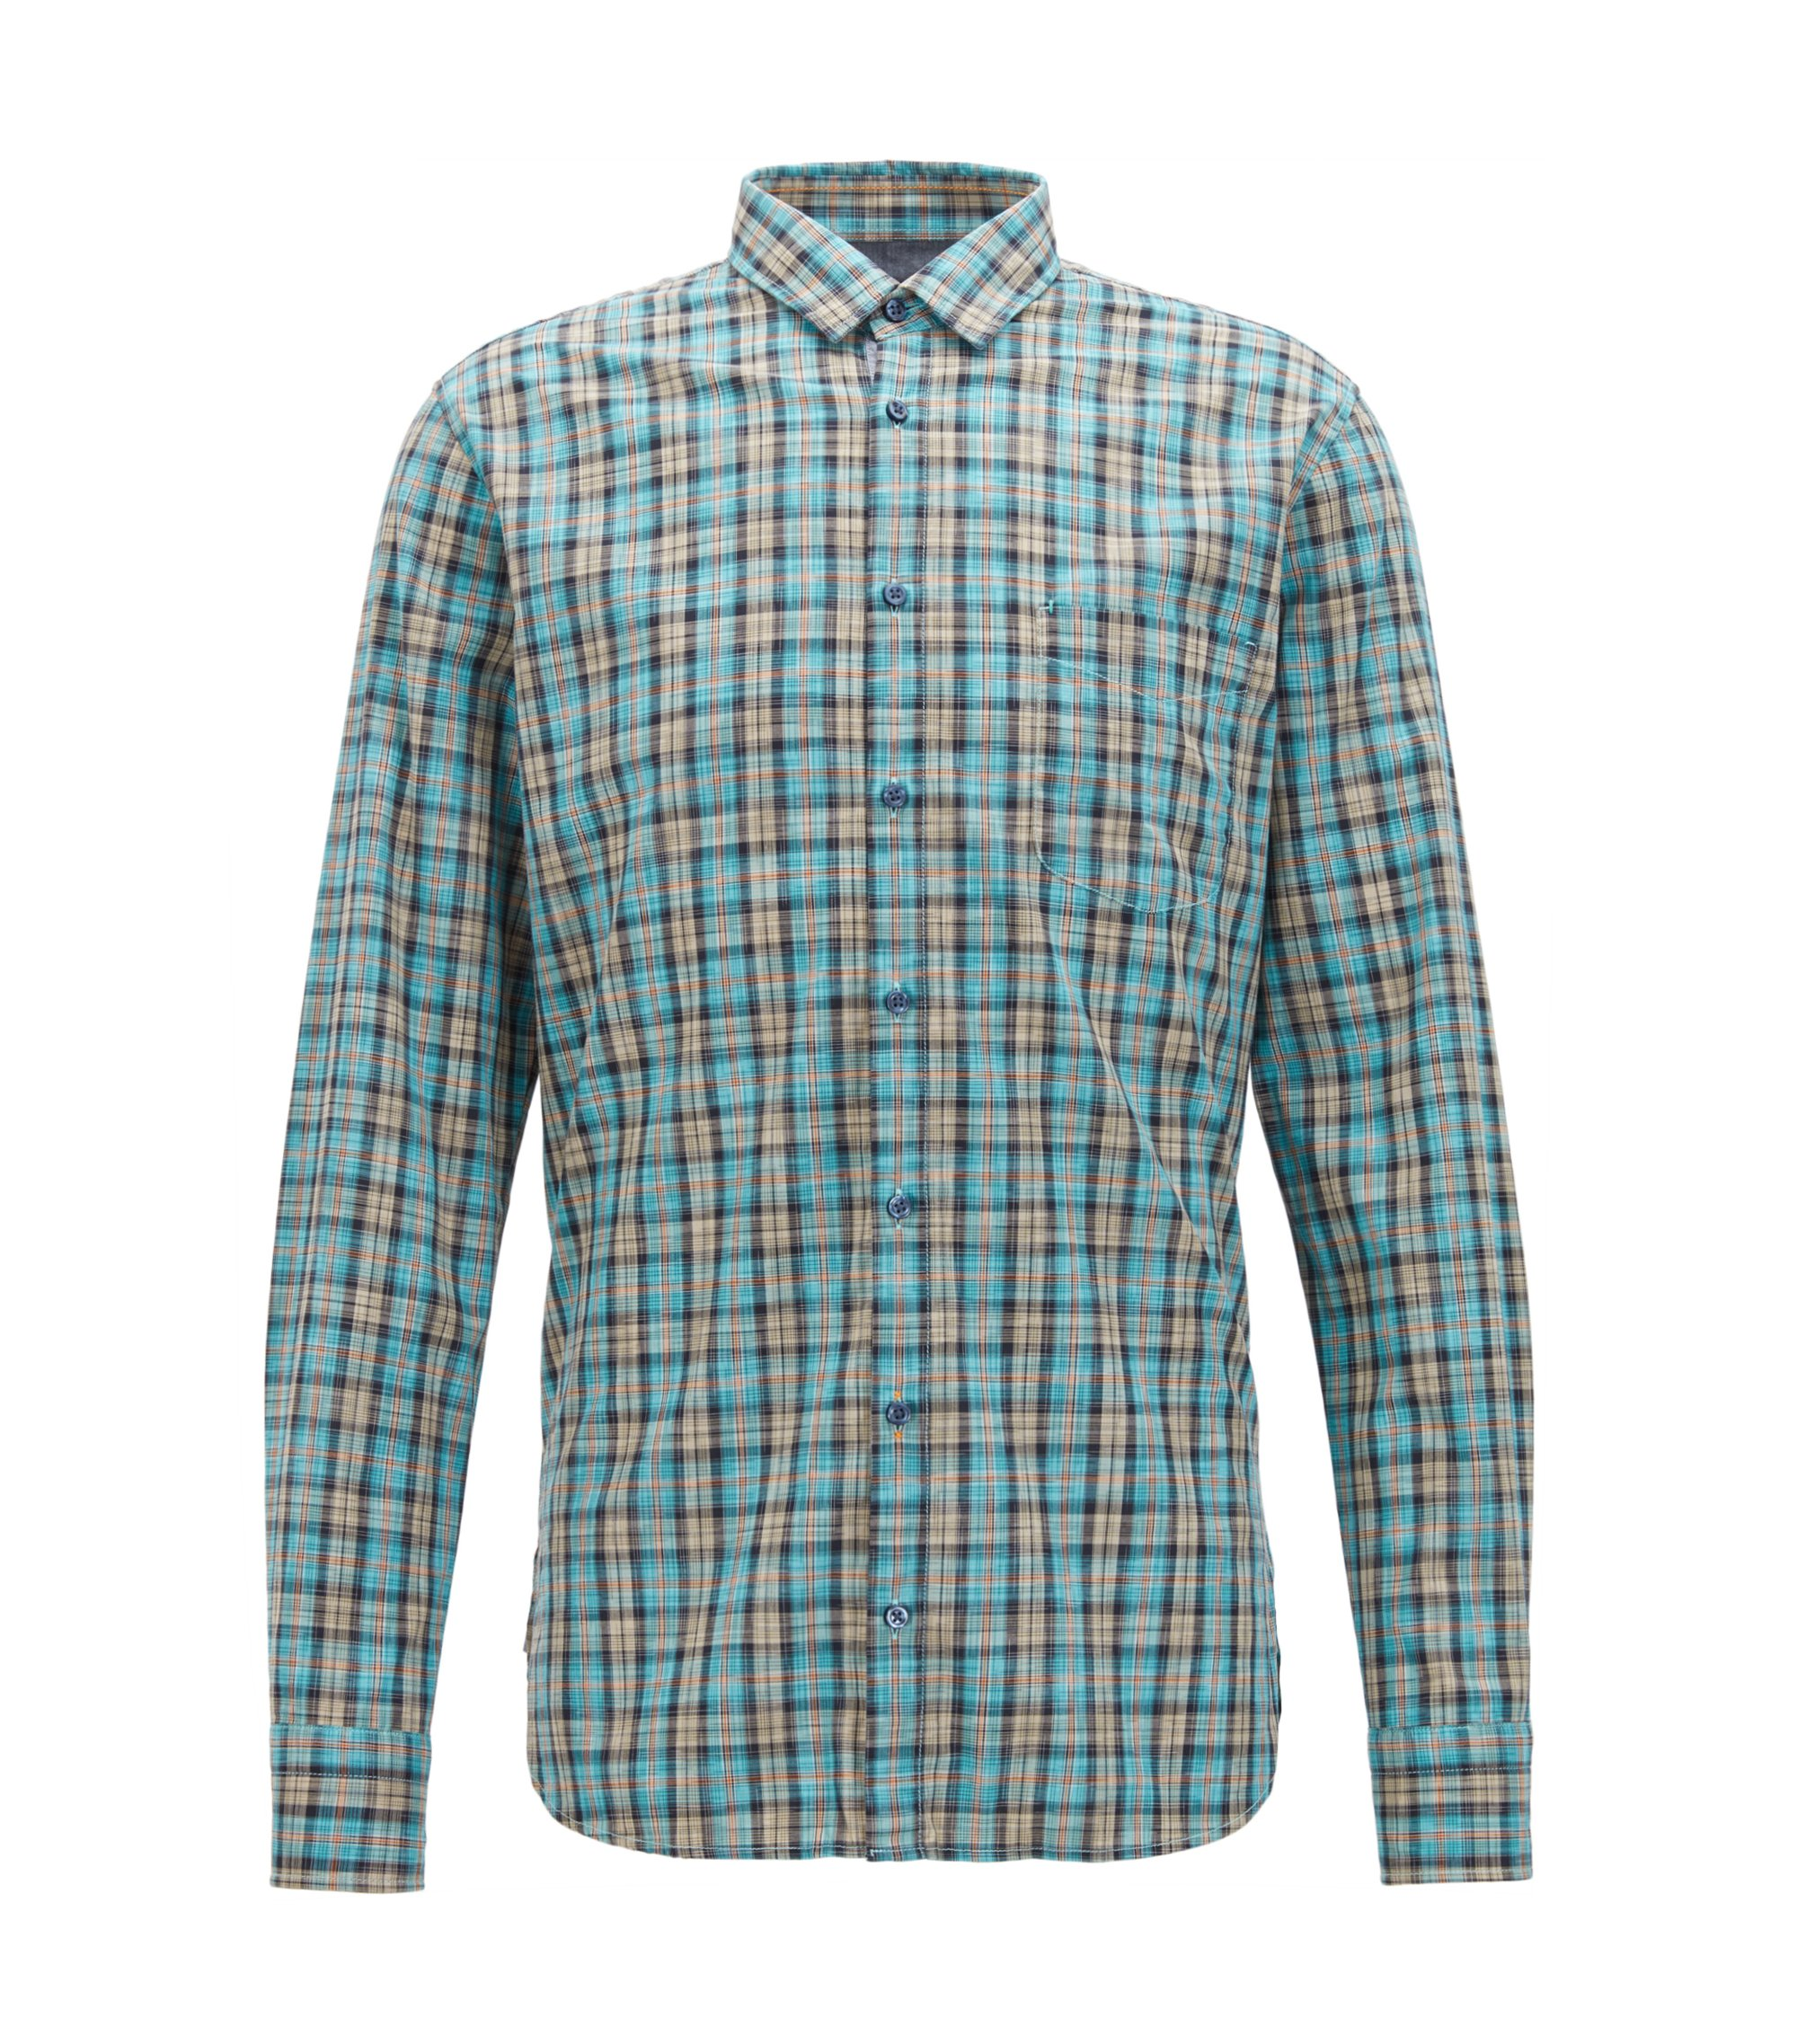 Camicia in cotone slim fit a quadri policromi, Turchese